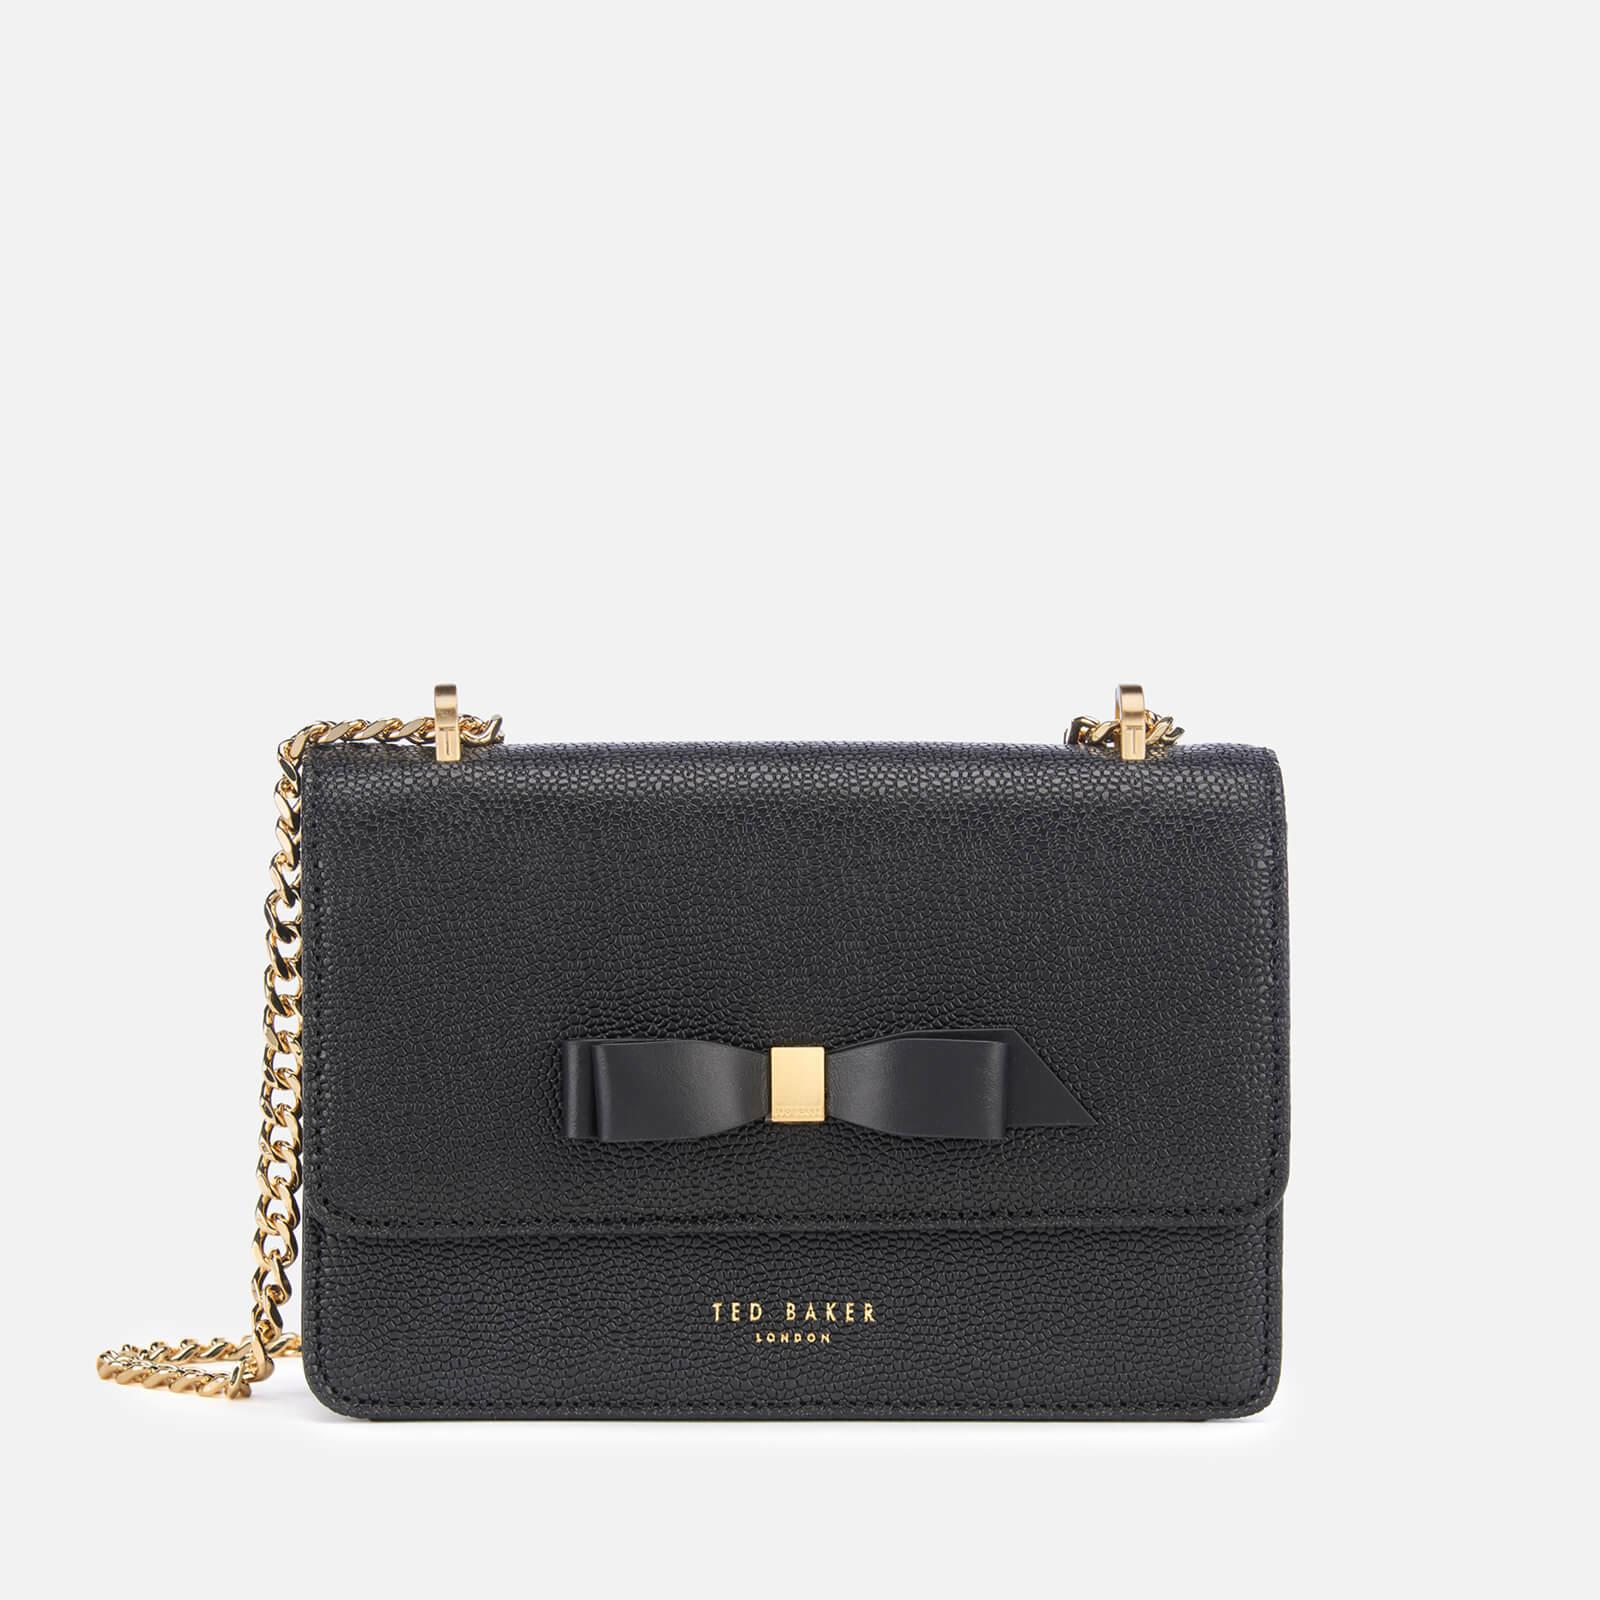 50143ea2896 ... Ted Baker - Black Jayllaa Bow Detail Micro Cross Body Bag - Lyst. Visit  MyBag. Tap to visit site